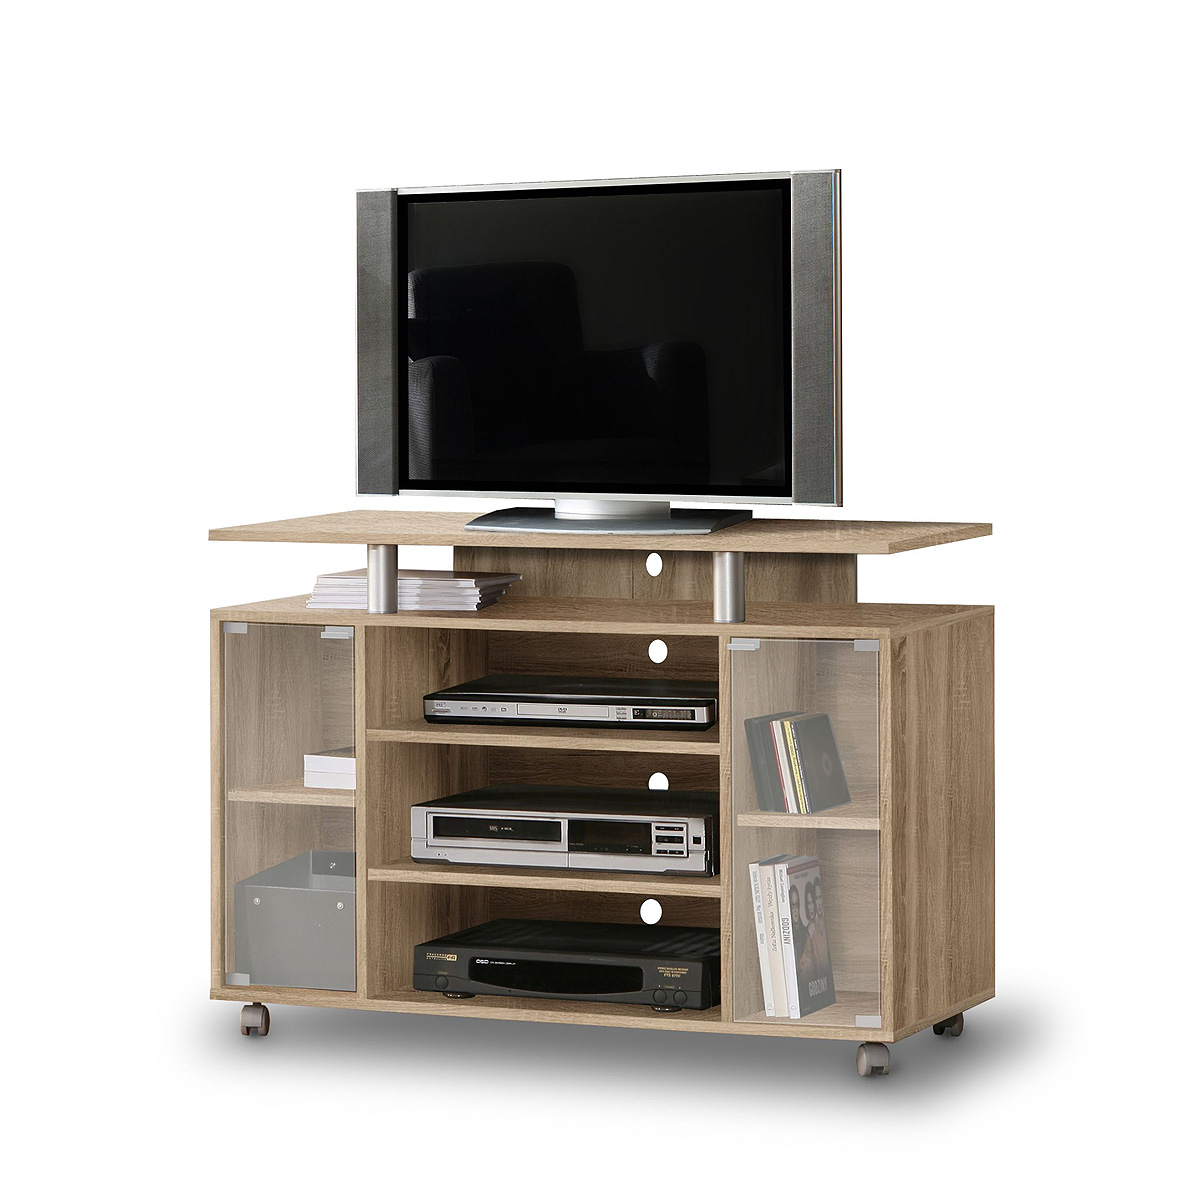 tv kommode selber bauen die neueste innovation der innenarchitektur und m bel. Black Bedroom Furniture Sets. Home Design Ideas